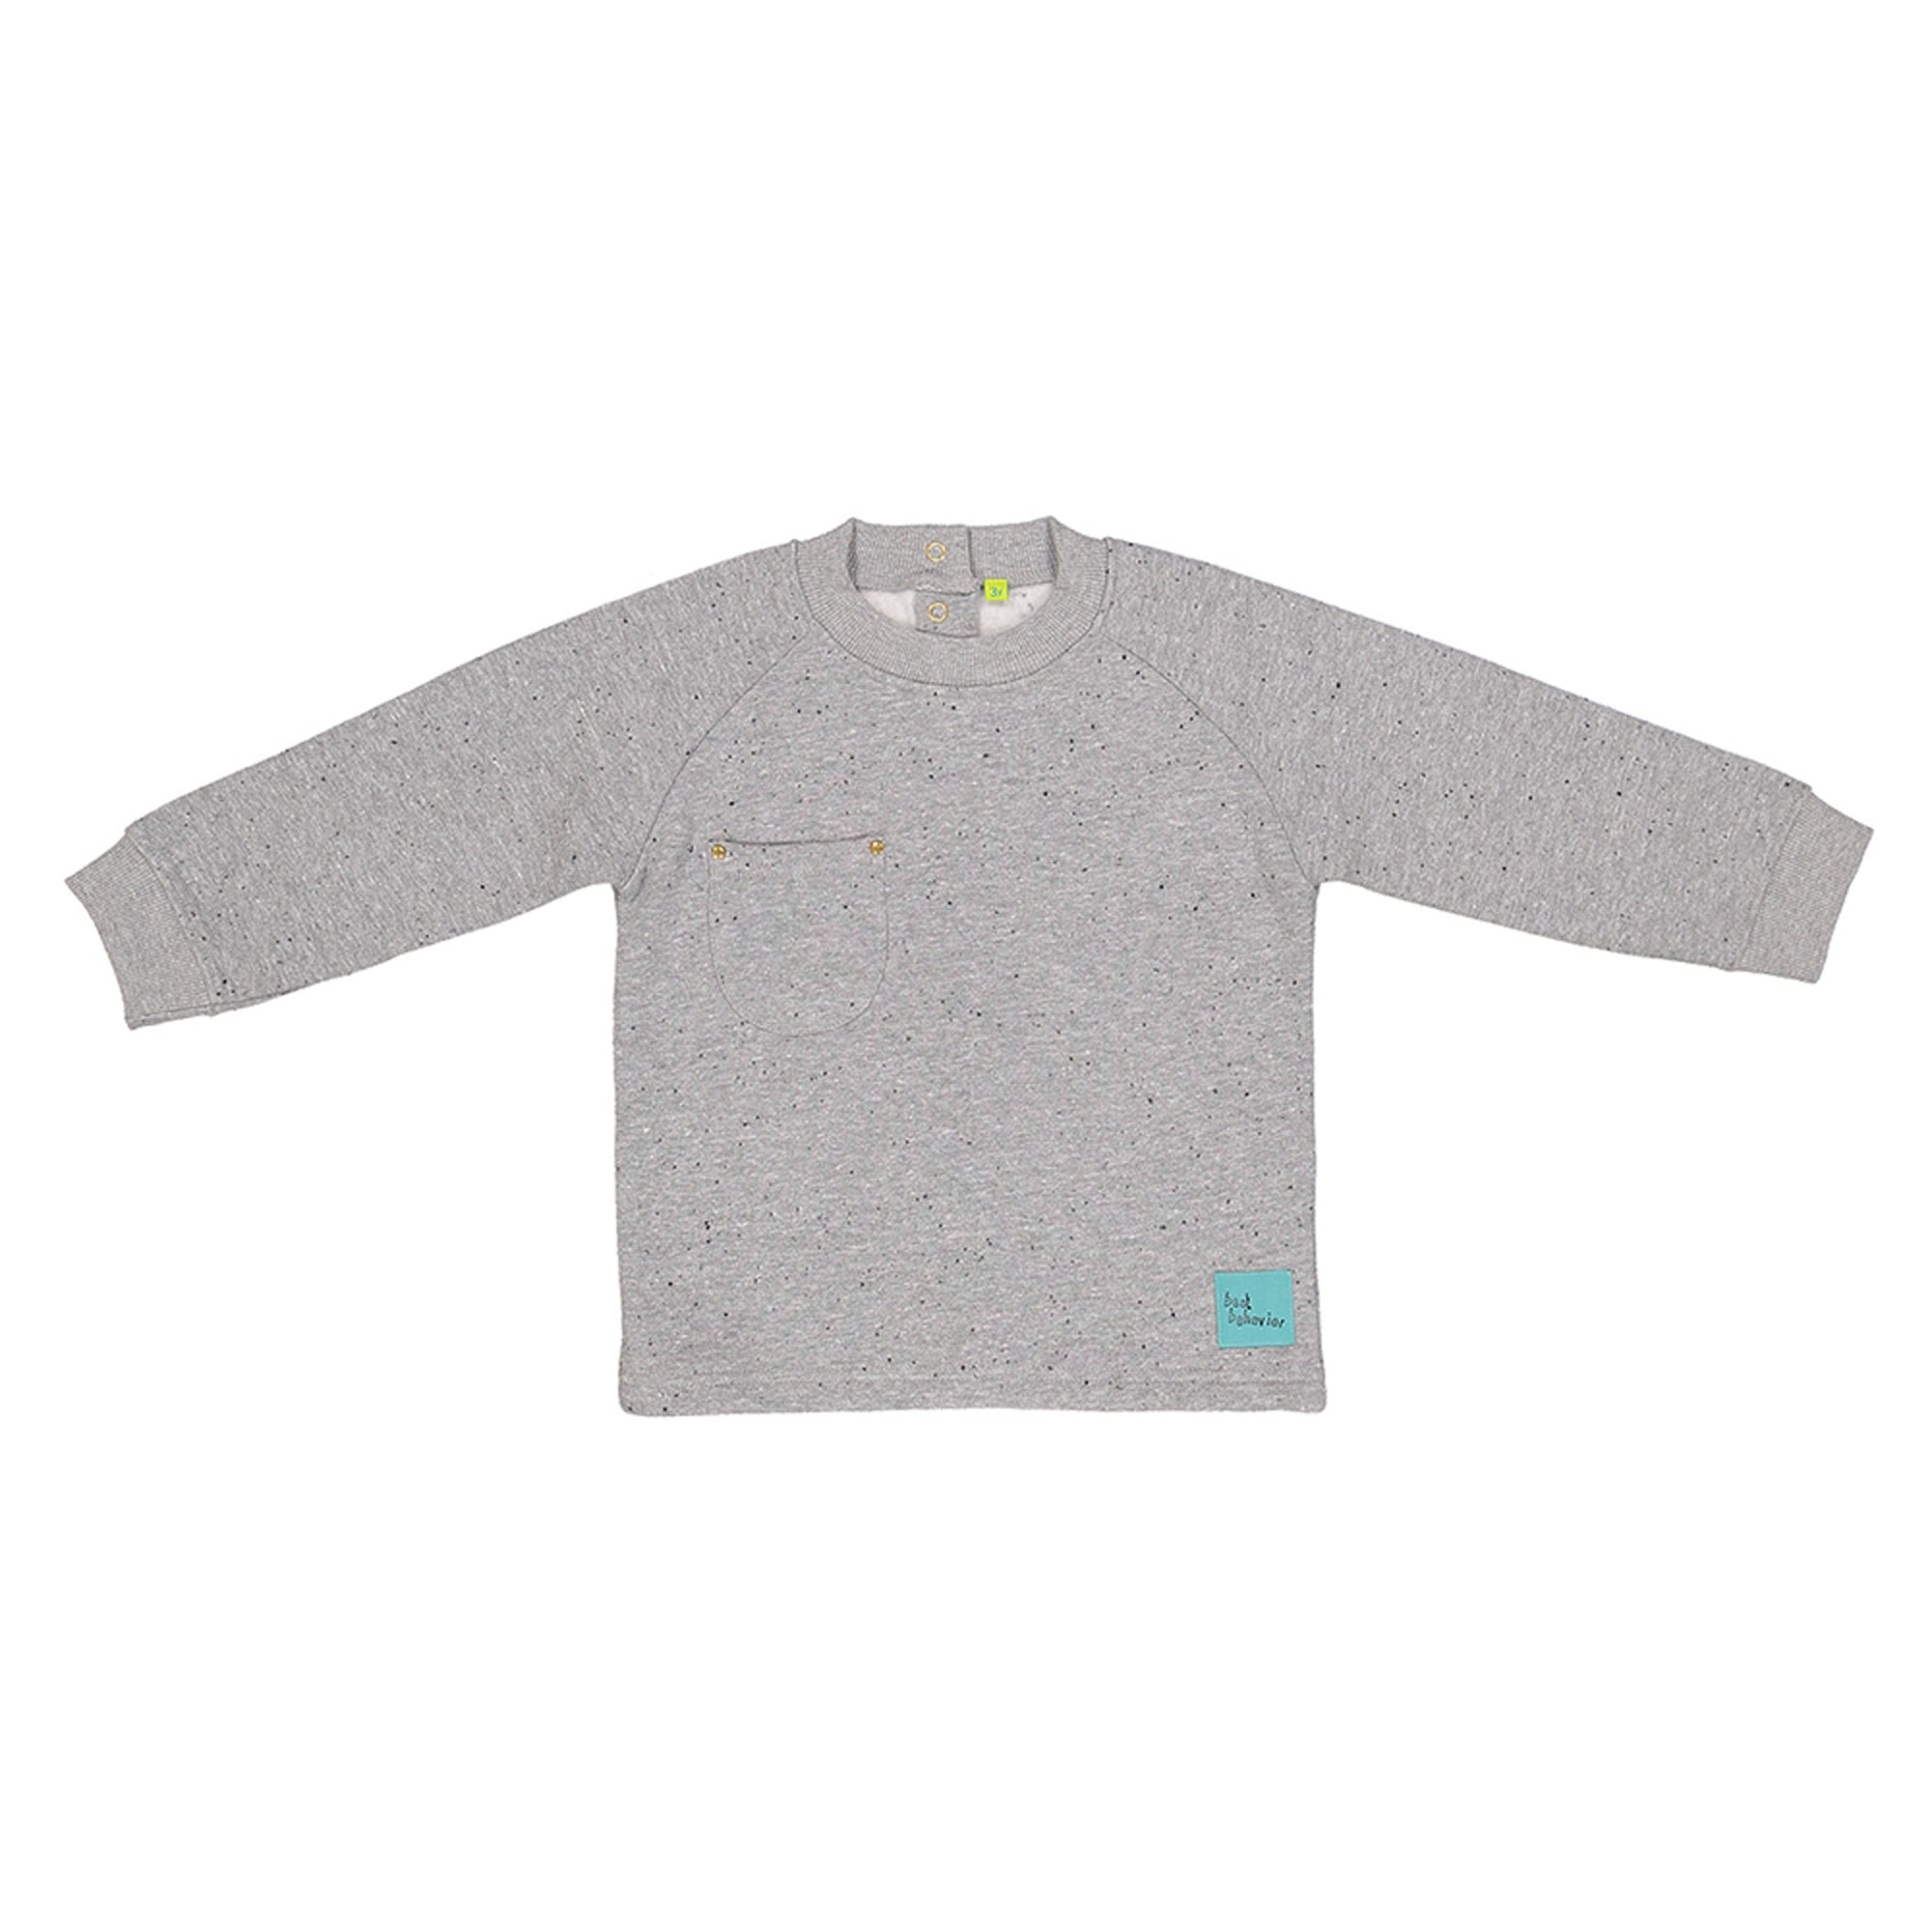 Moscow Sweater grey